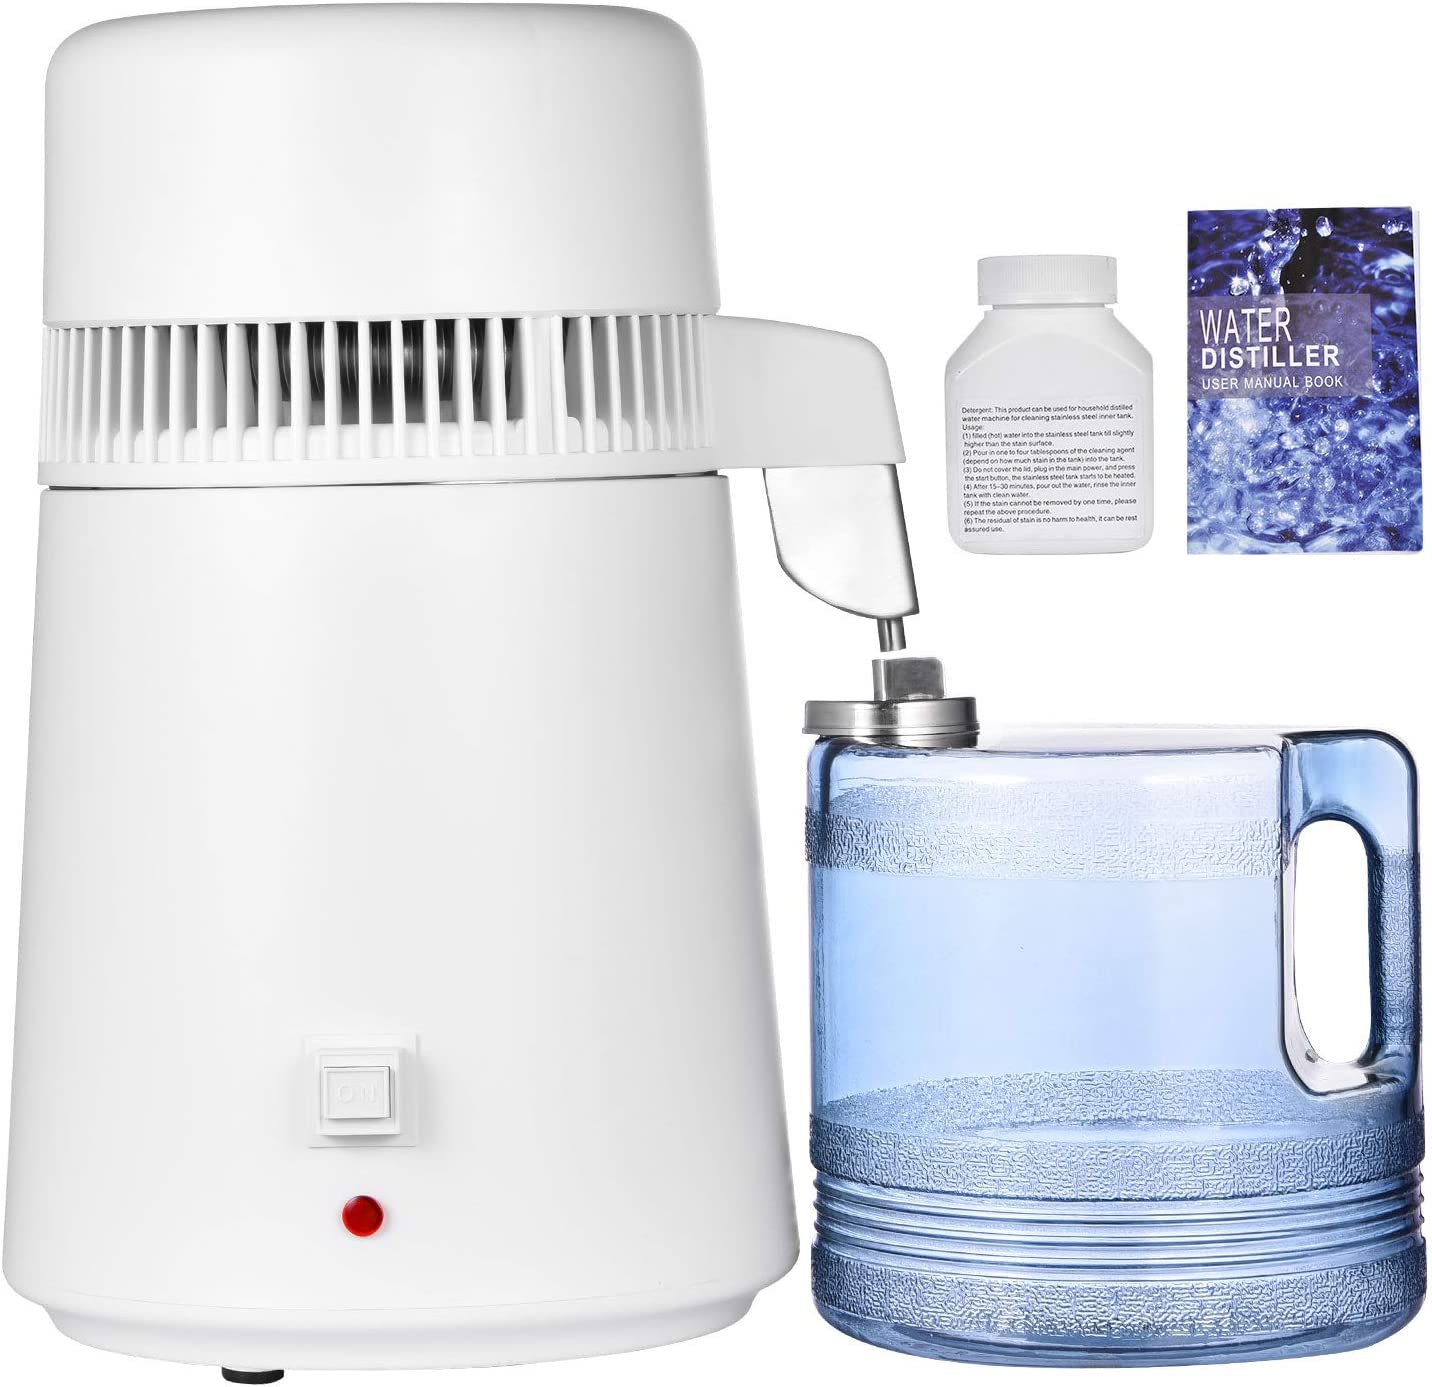 Peitten Water Distiller Machine, 750W Water Purifier Filter with Plastic Container, 304 Stainless Steel Pure Water Distilling Maker for Home, BPA Free, 1.1 Gal/4L (Water Distiller, White)